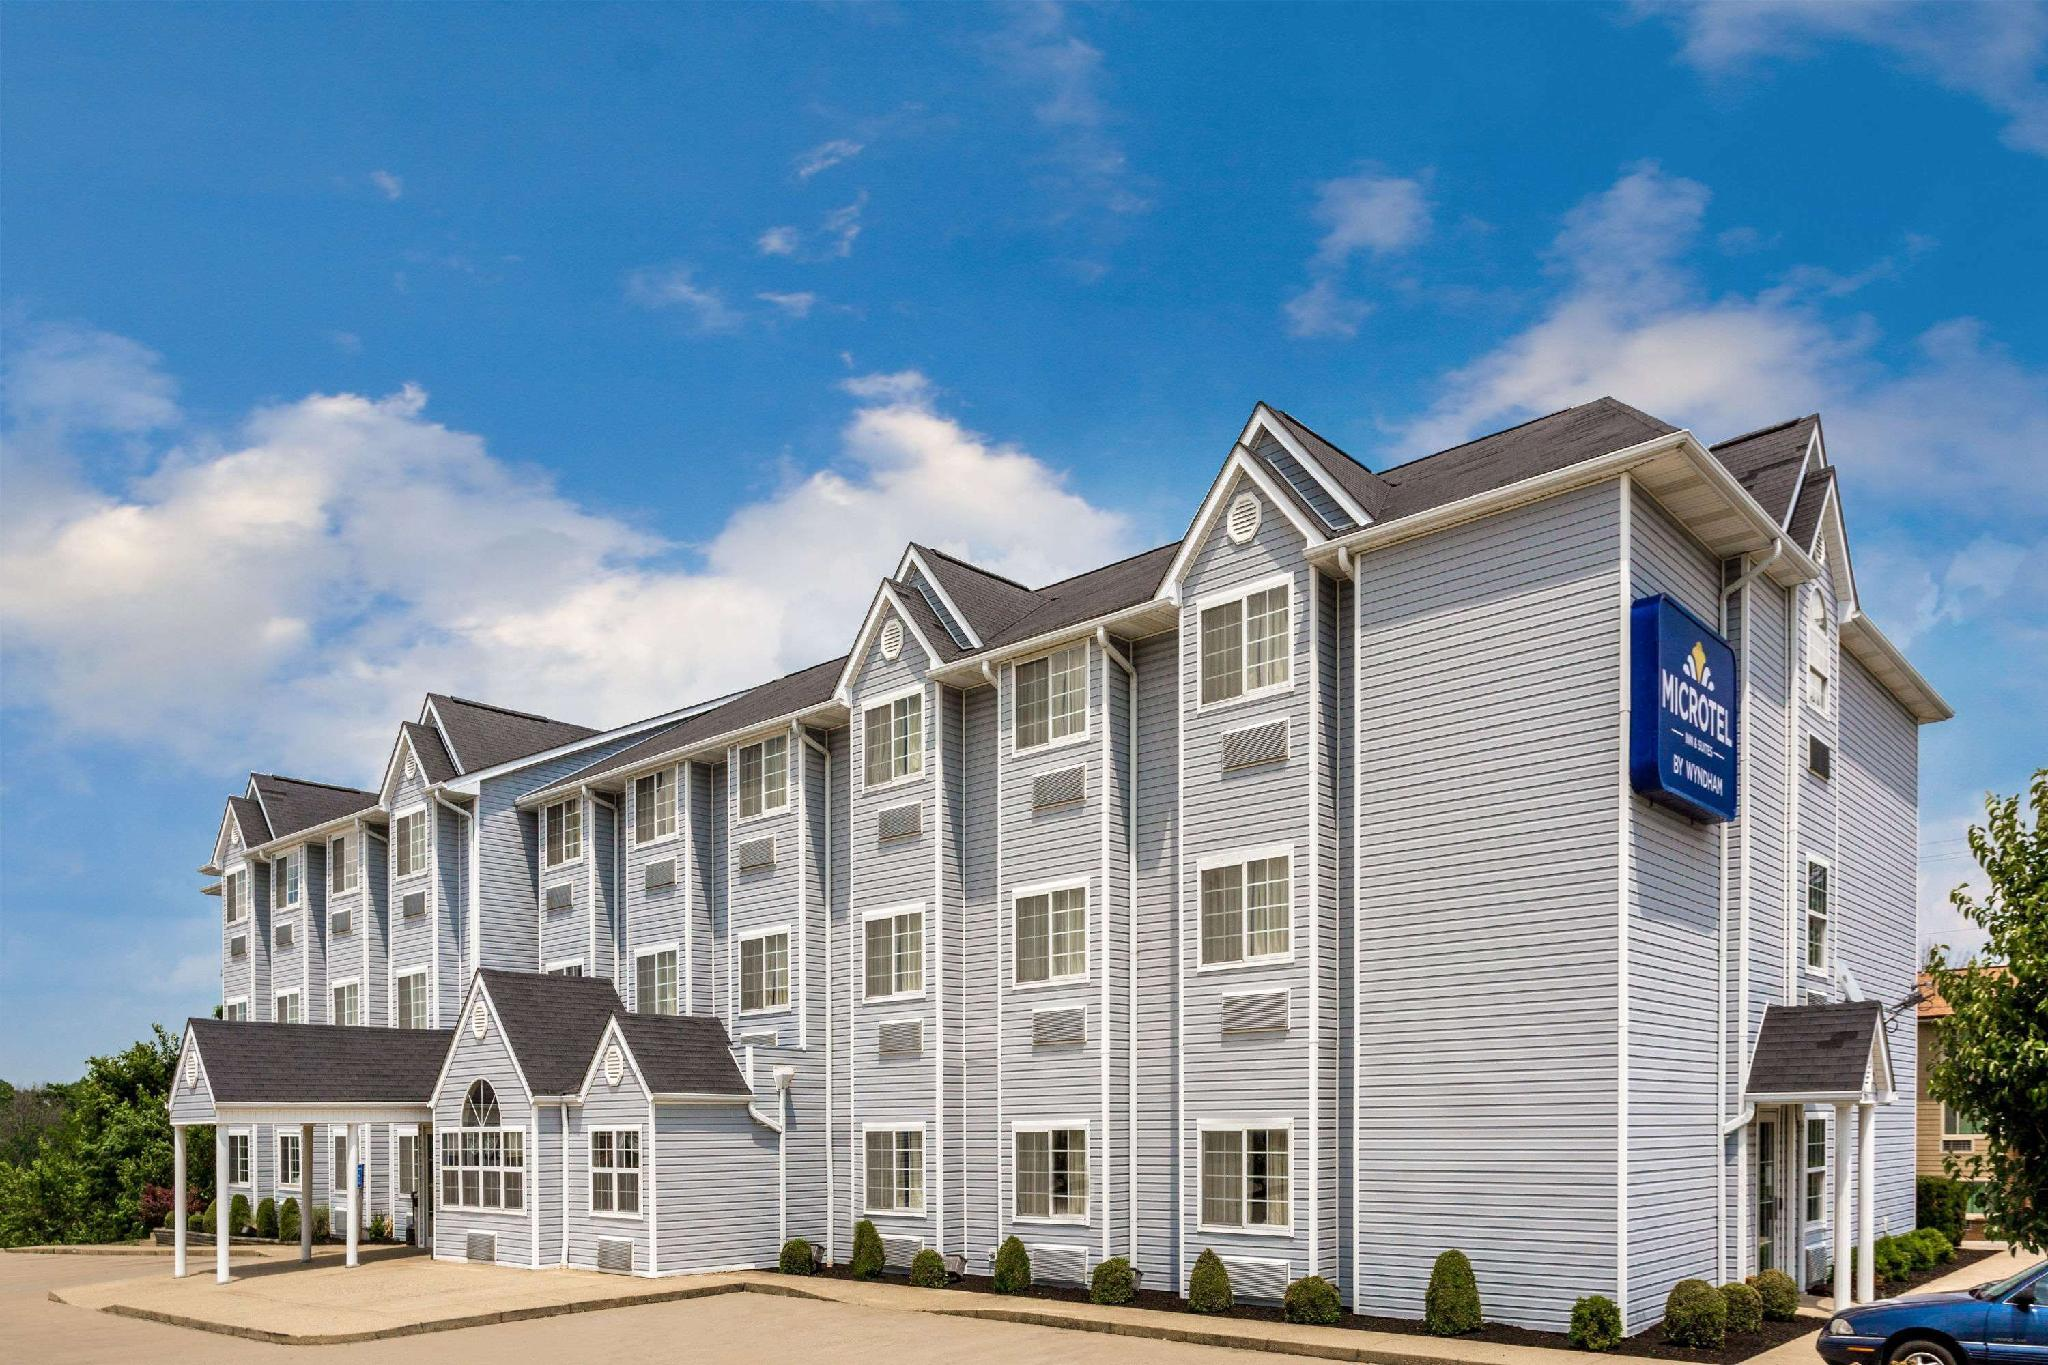 Microtel Inn And Suites By Wyndham Dry Ridge